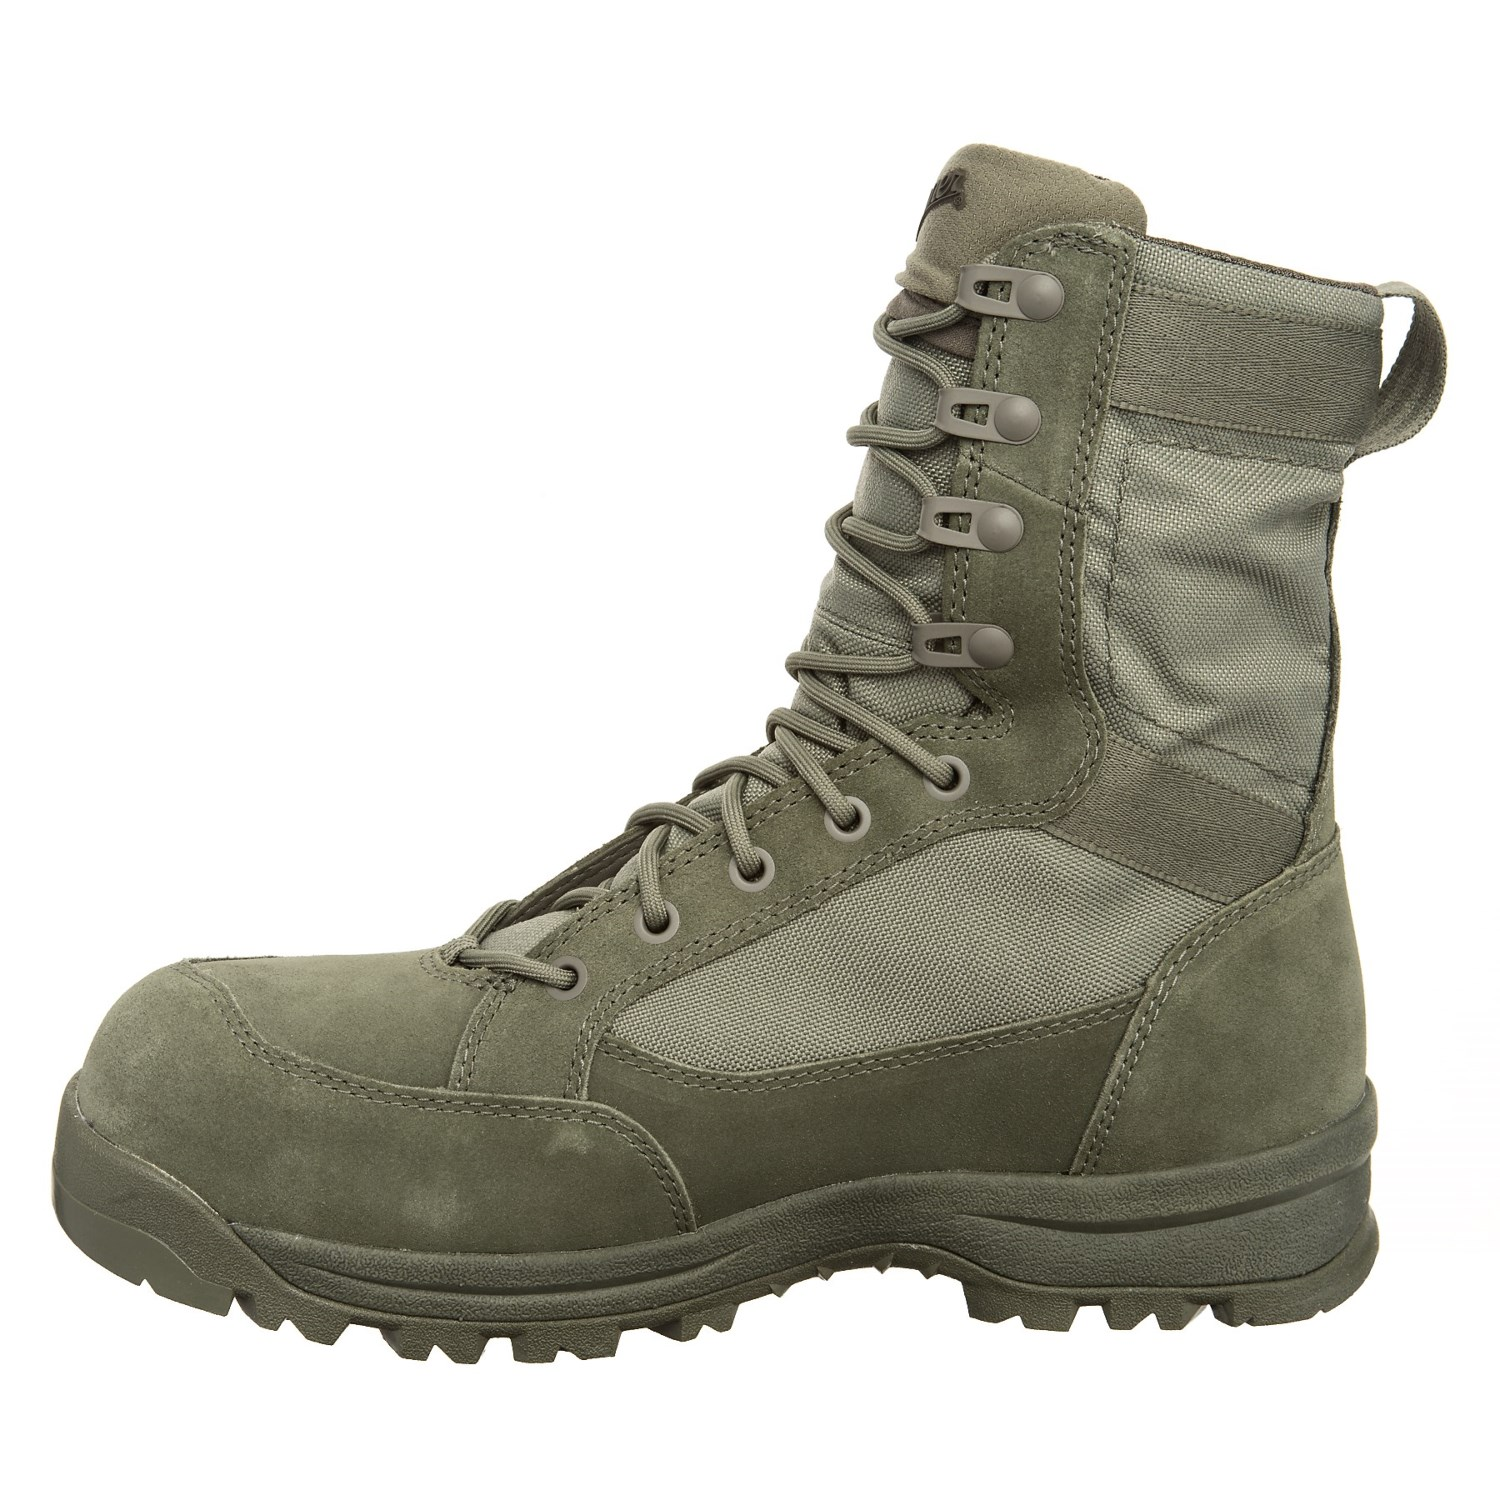 "1affa59dfc4 Danner 8"" Tanicus Military Work Boots - Composite Safety Toe, Waterproof  (For Men)"